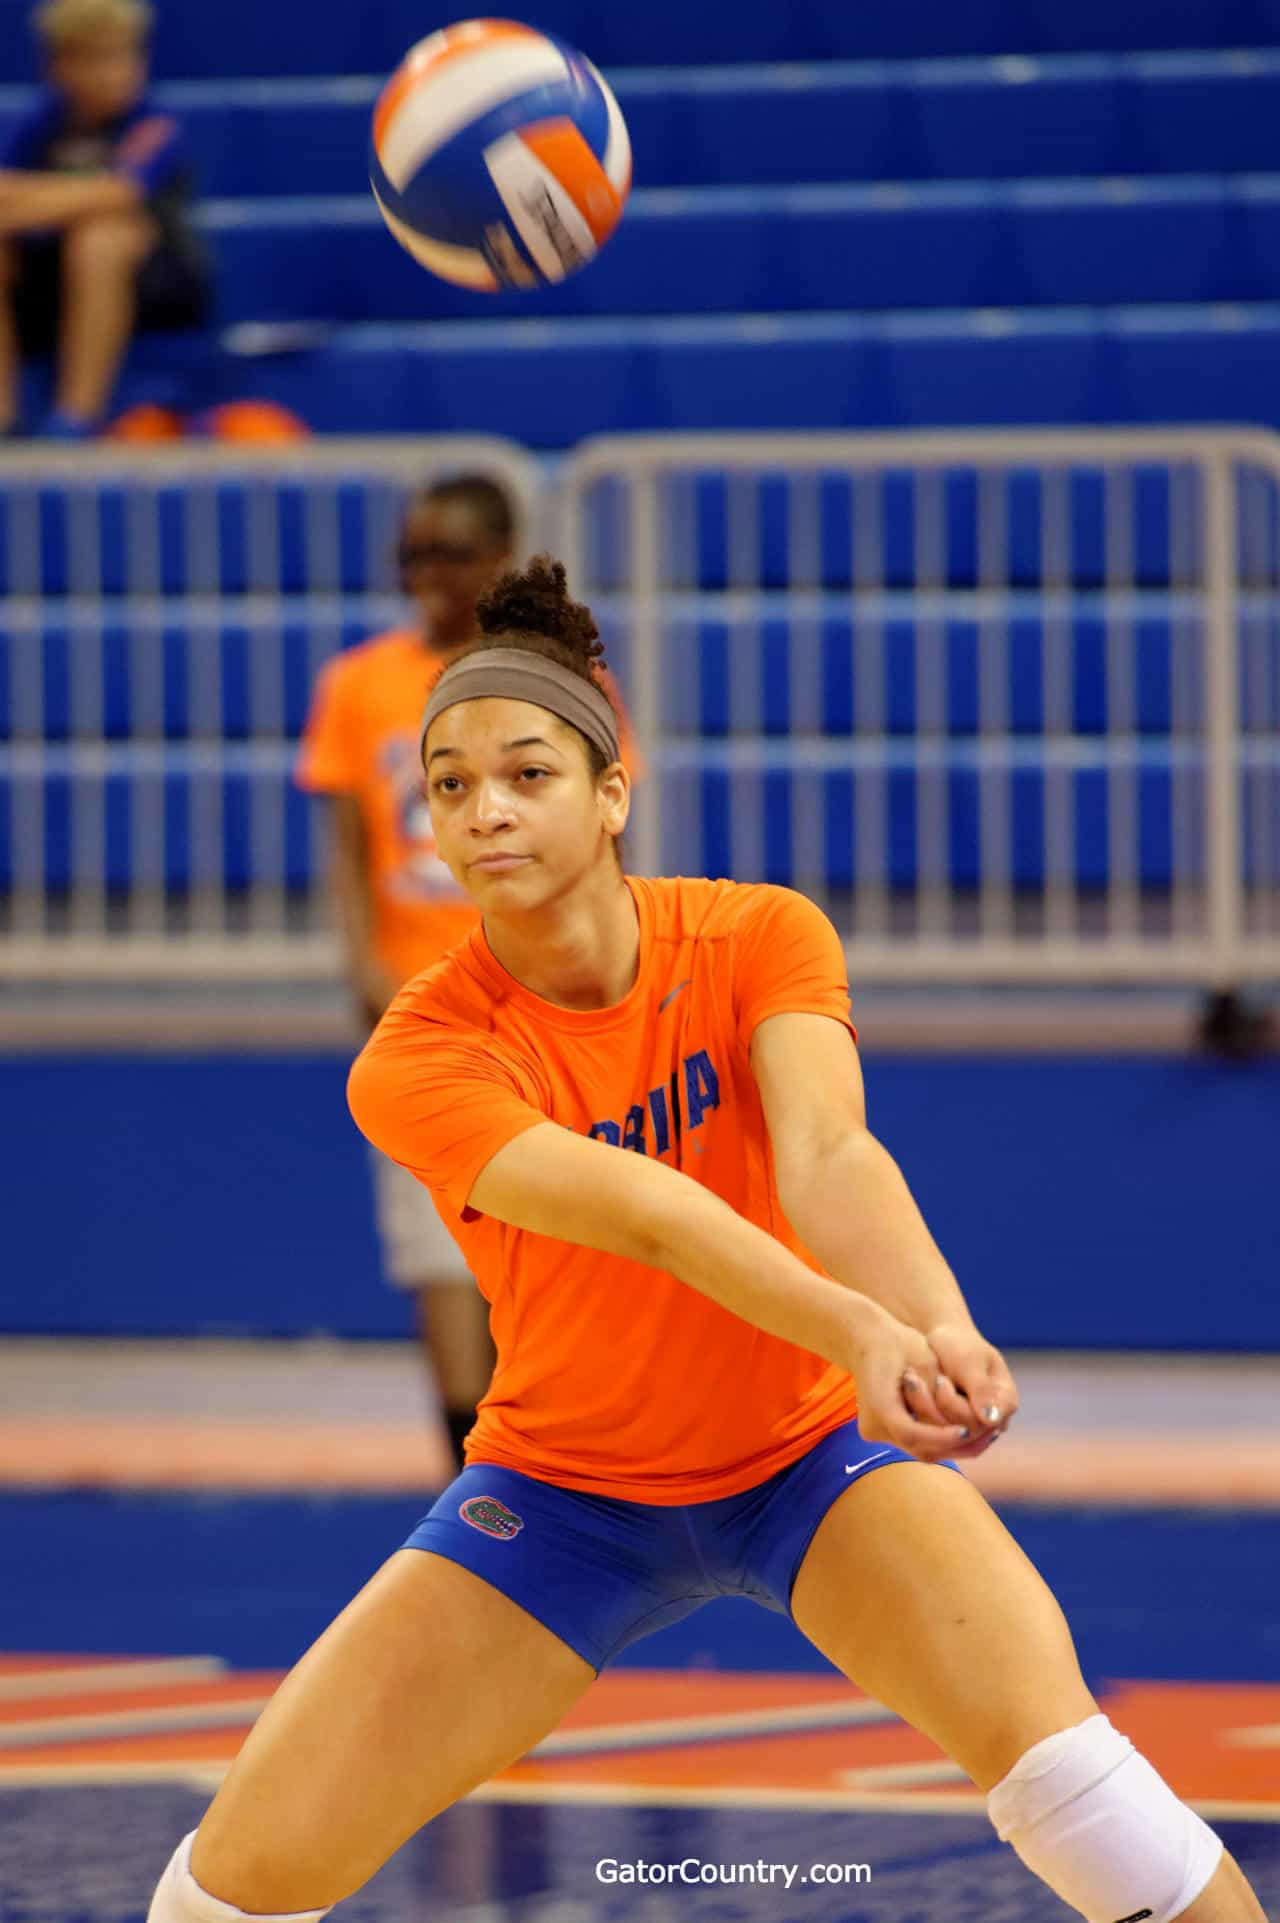 Florida Gators Volleyball Right Side Hitter Alex Holston warms up in Stephen C. O'Connell Center-Florida Gators Volleyball-1280x1923